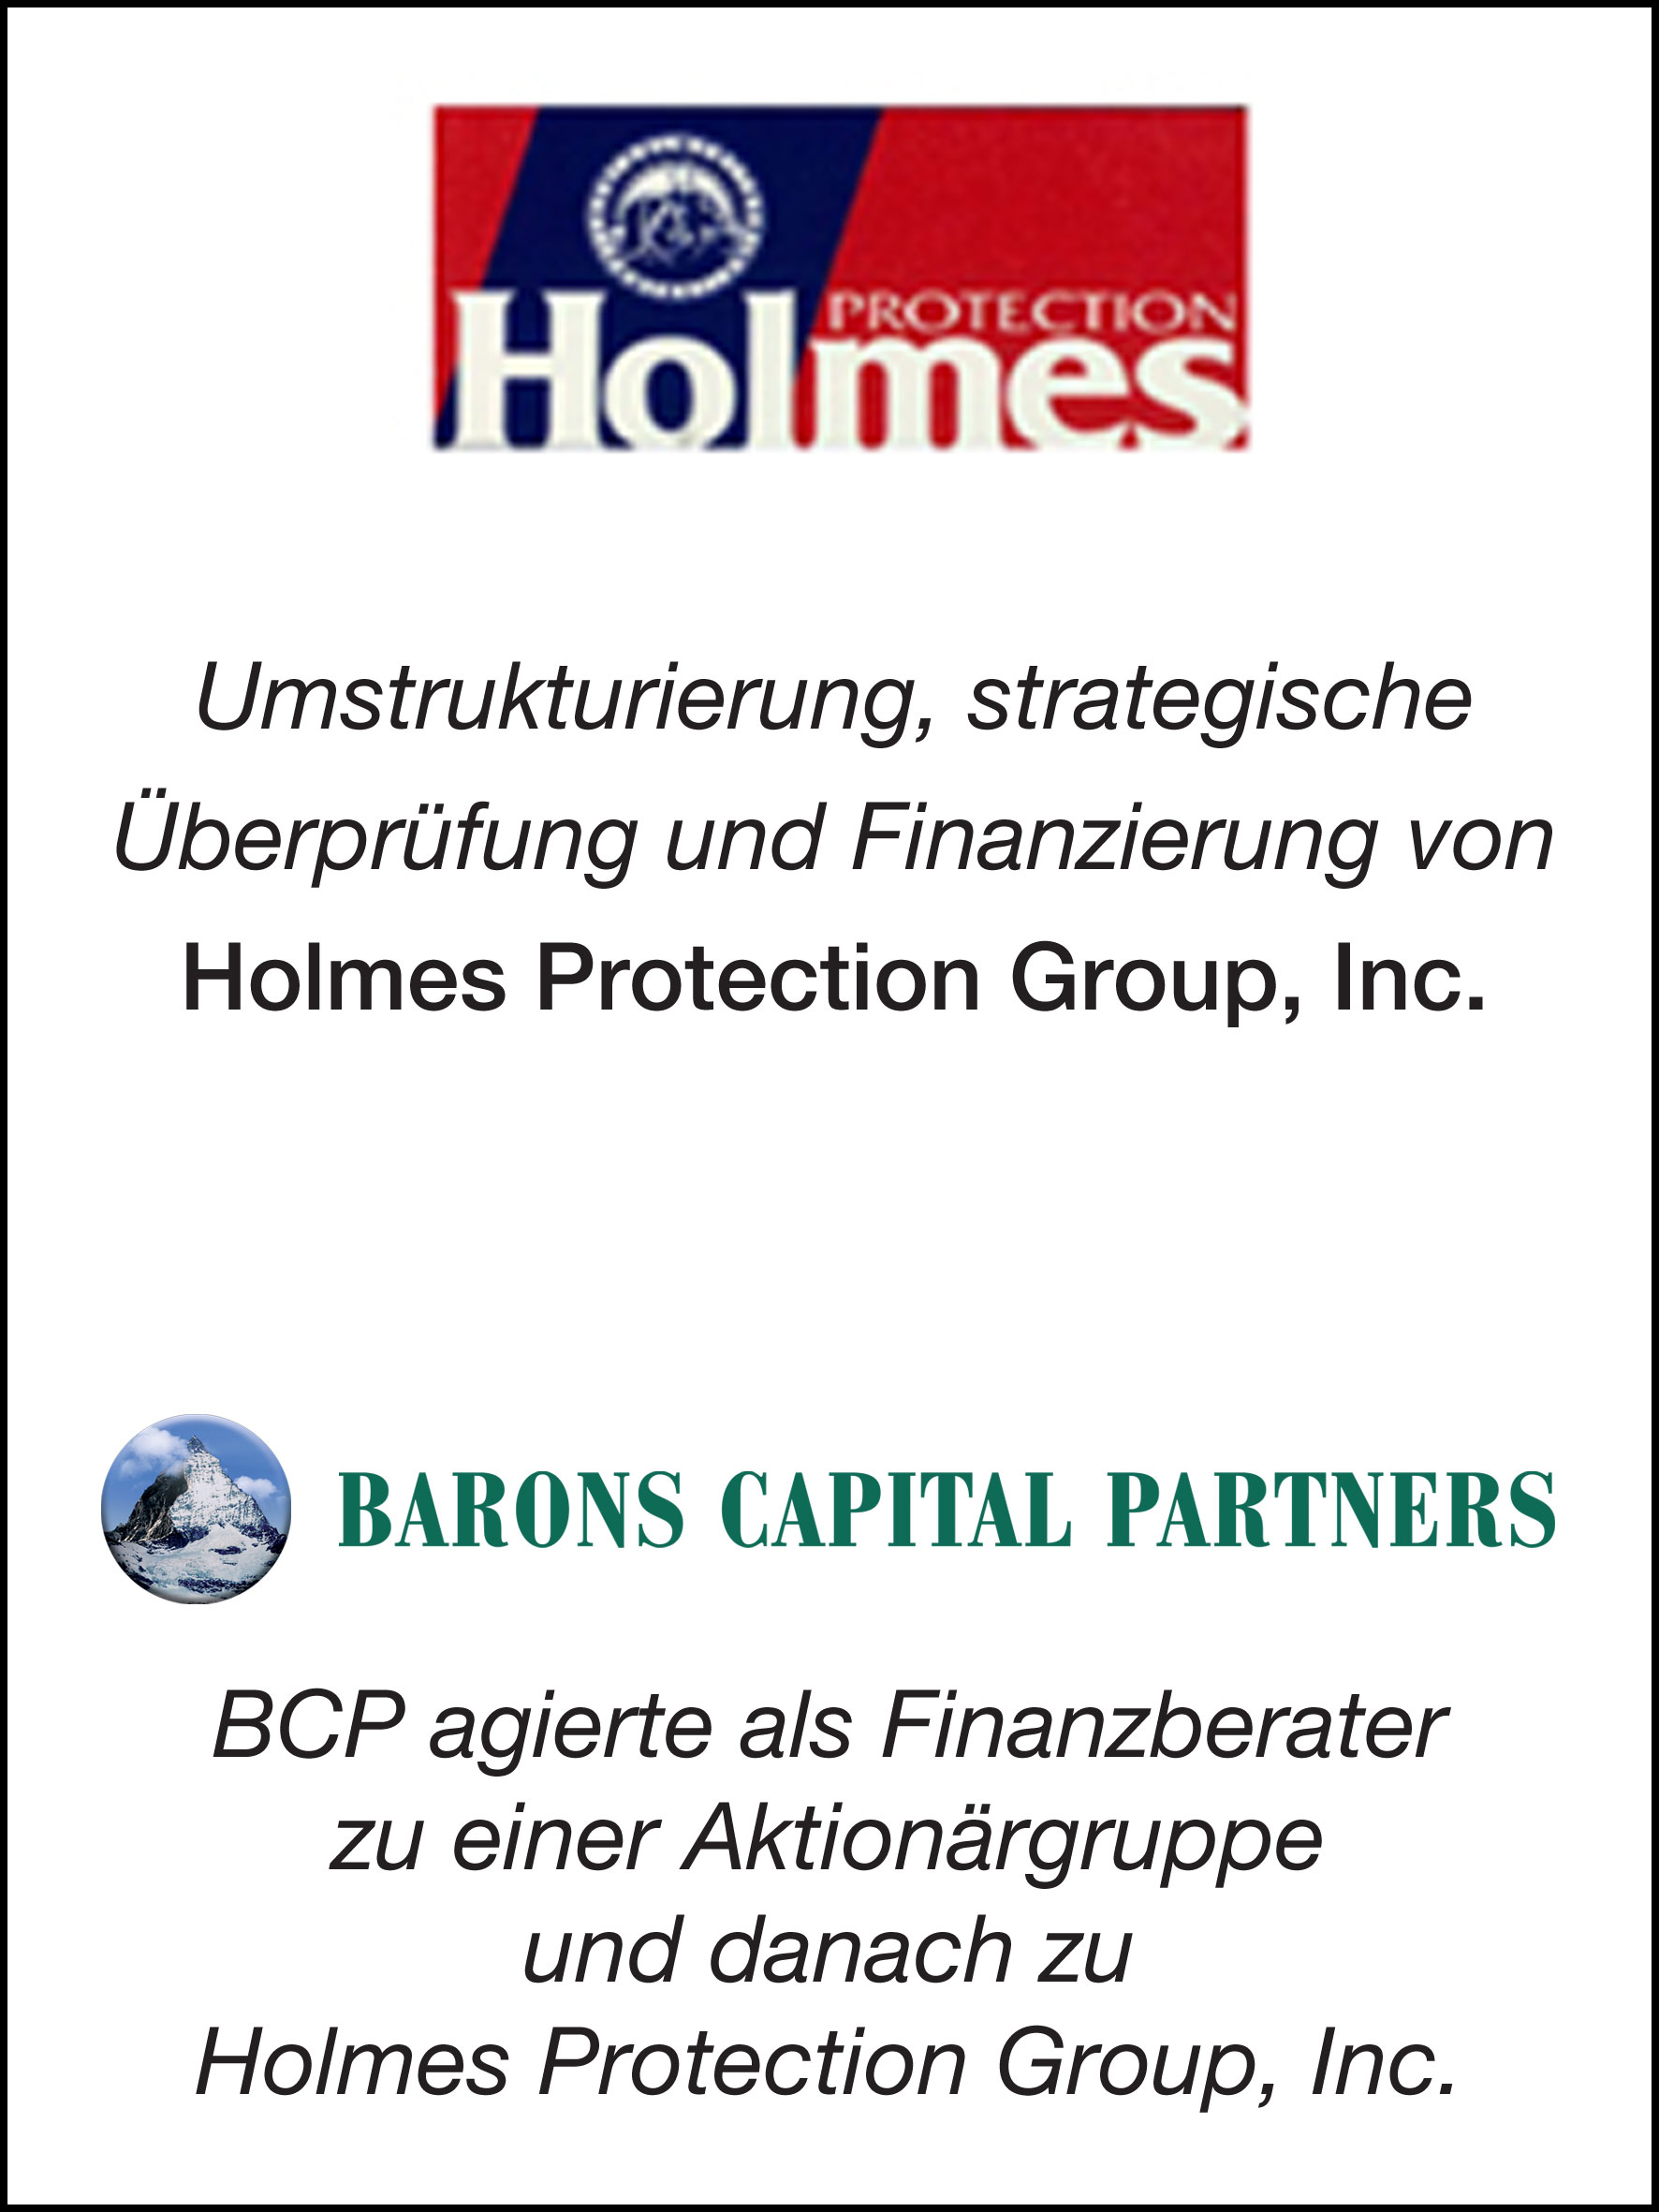 27_Holmes Protection Group Inc_G